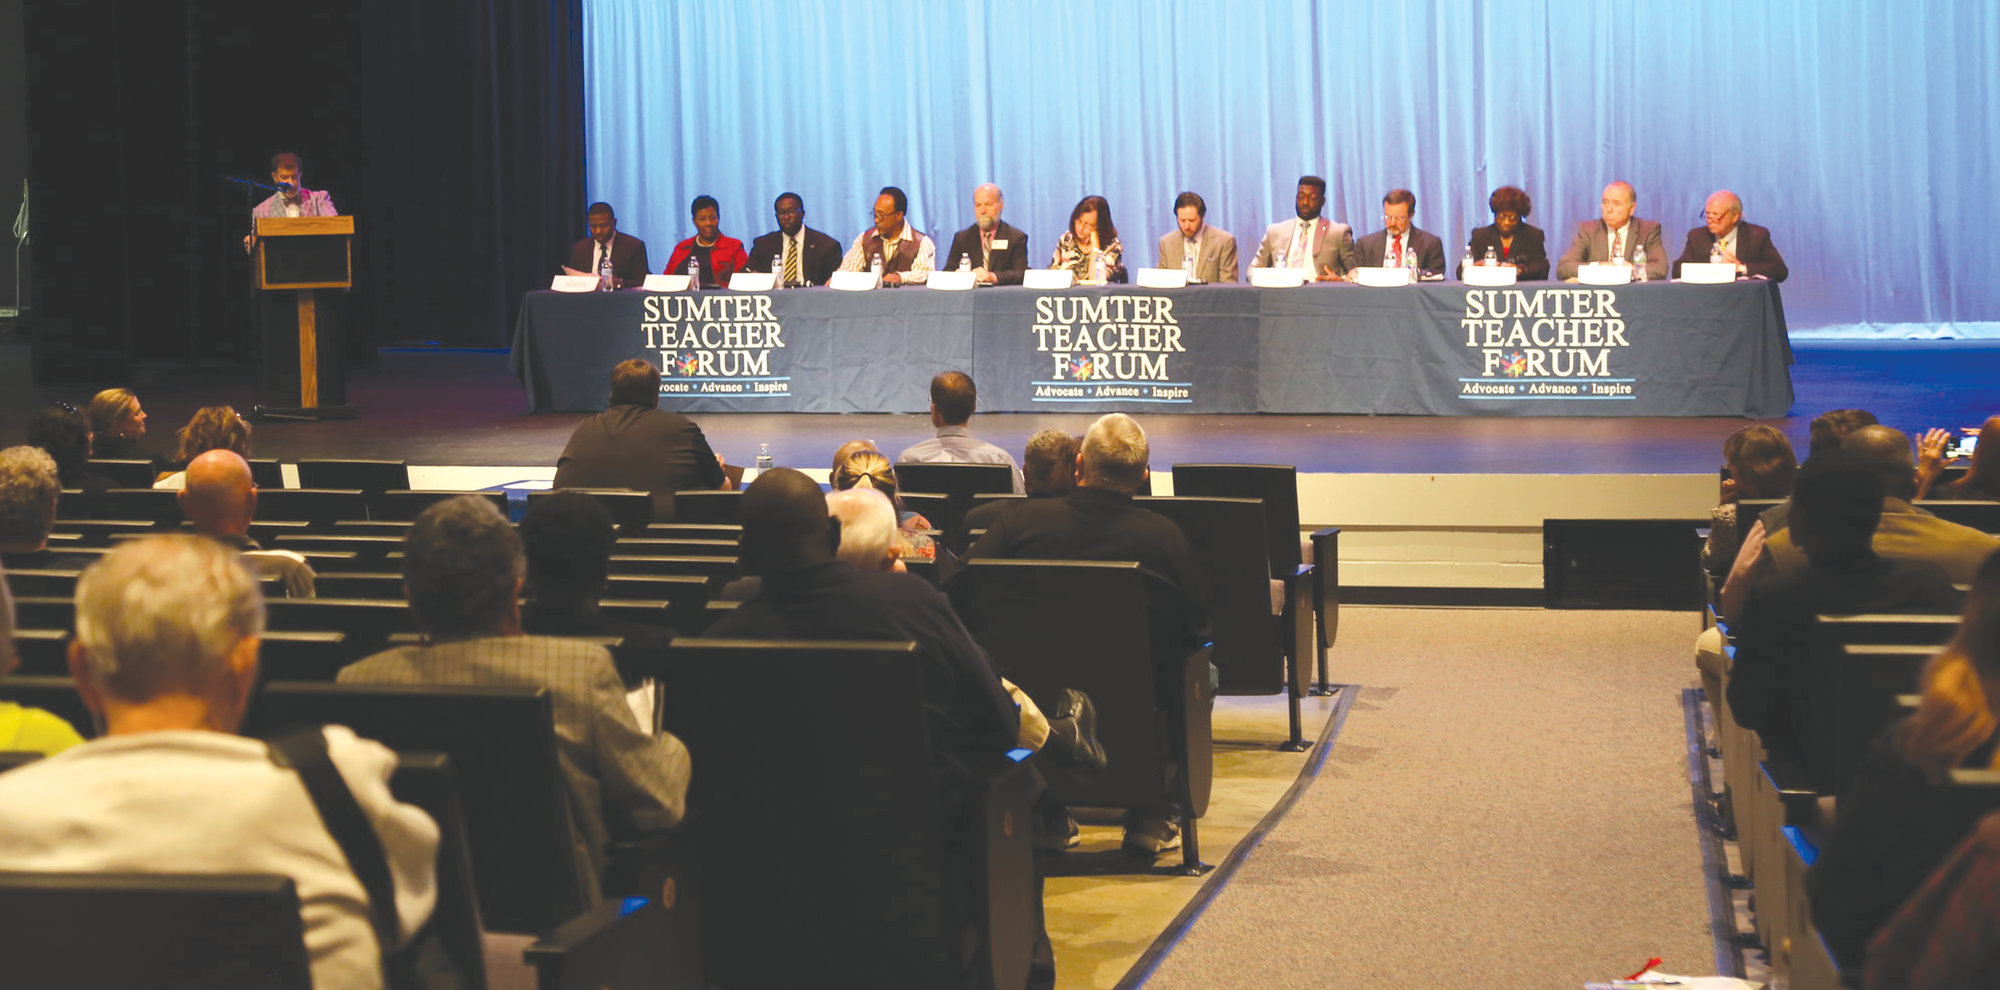 Derek Burress, WDXY AM 1240 and FM 105.9's Good Morning Sumter Show host, asks questions designed by the Sumter Teacher Forum to 12 of the 13 candidates running for a seat in Areas 1-4 on the Sumter School Board at a meet the candidate forum recently at Crestwood High School.